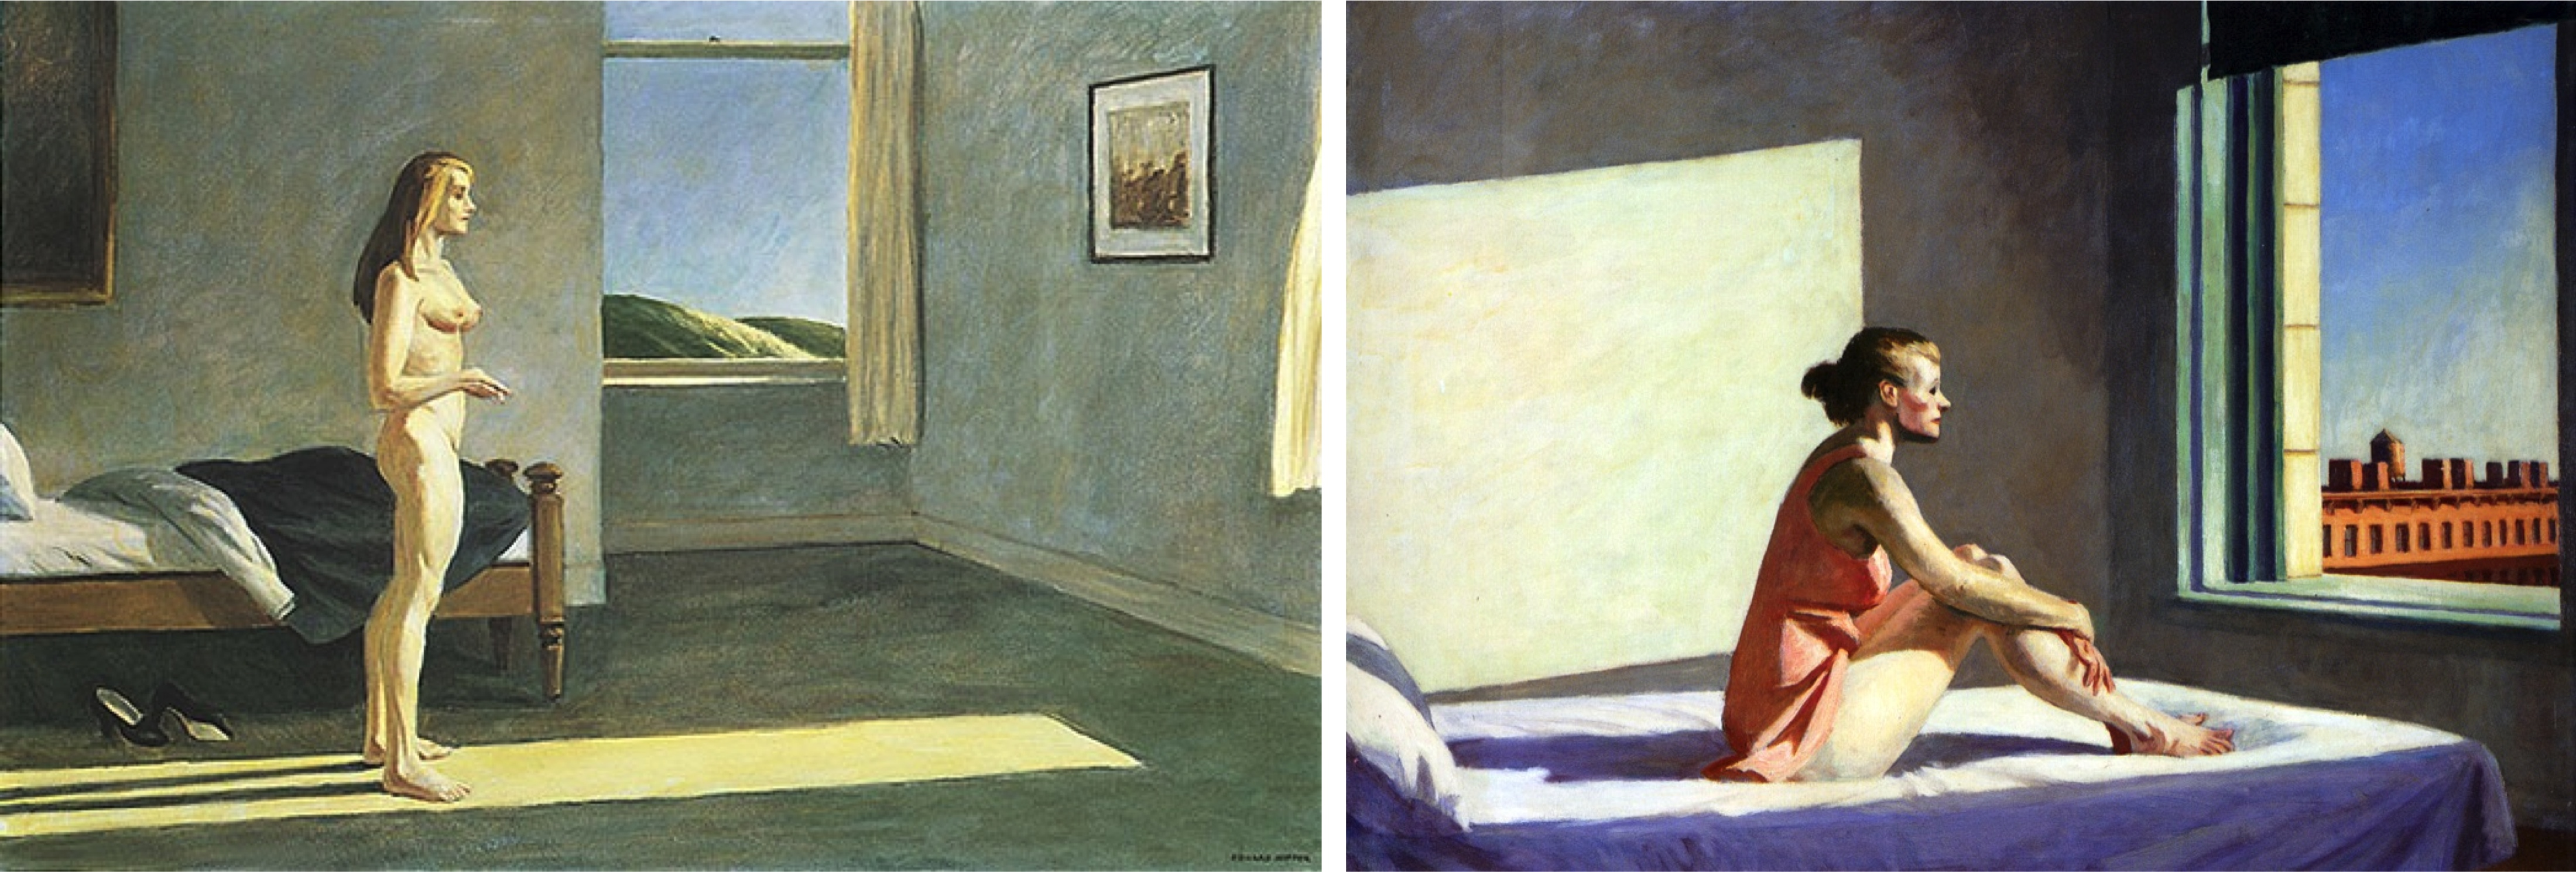 Hopper s sunlight paintings ideal forms and shadows tim for Sunlight windows